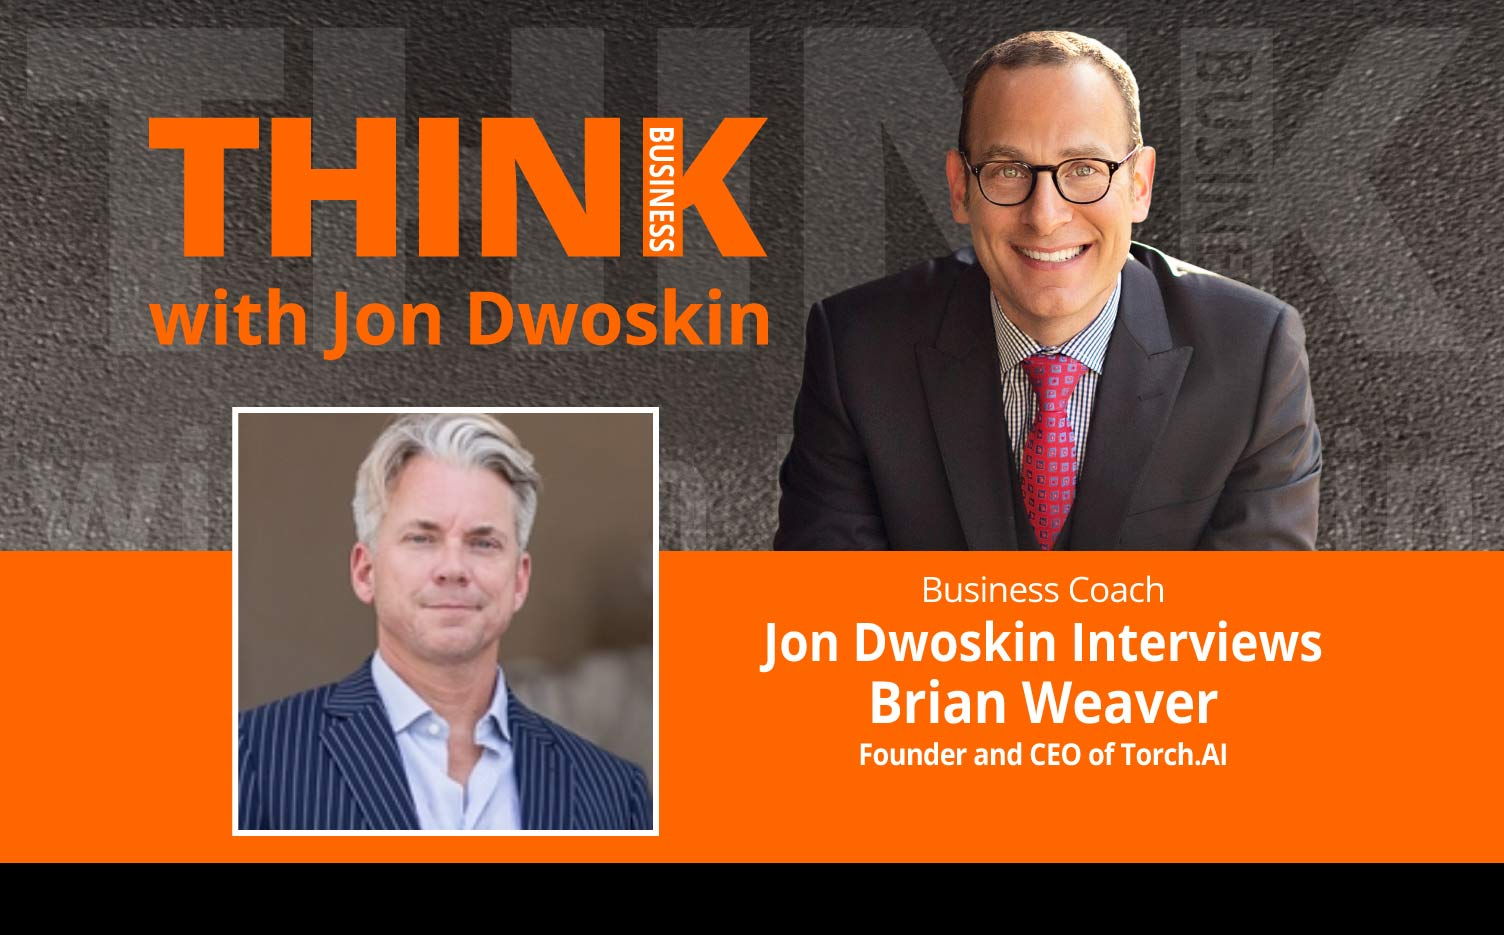 THINK Business Podcast: Jon Dwoskin Interviews Brian Weaver, Founder and CEO of Torch.AI